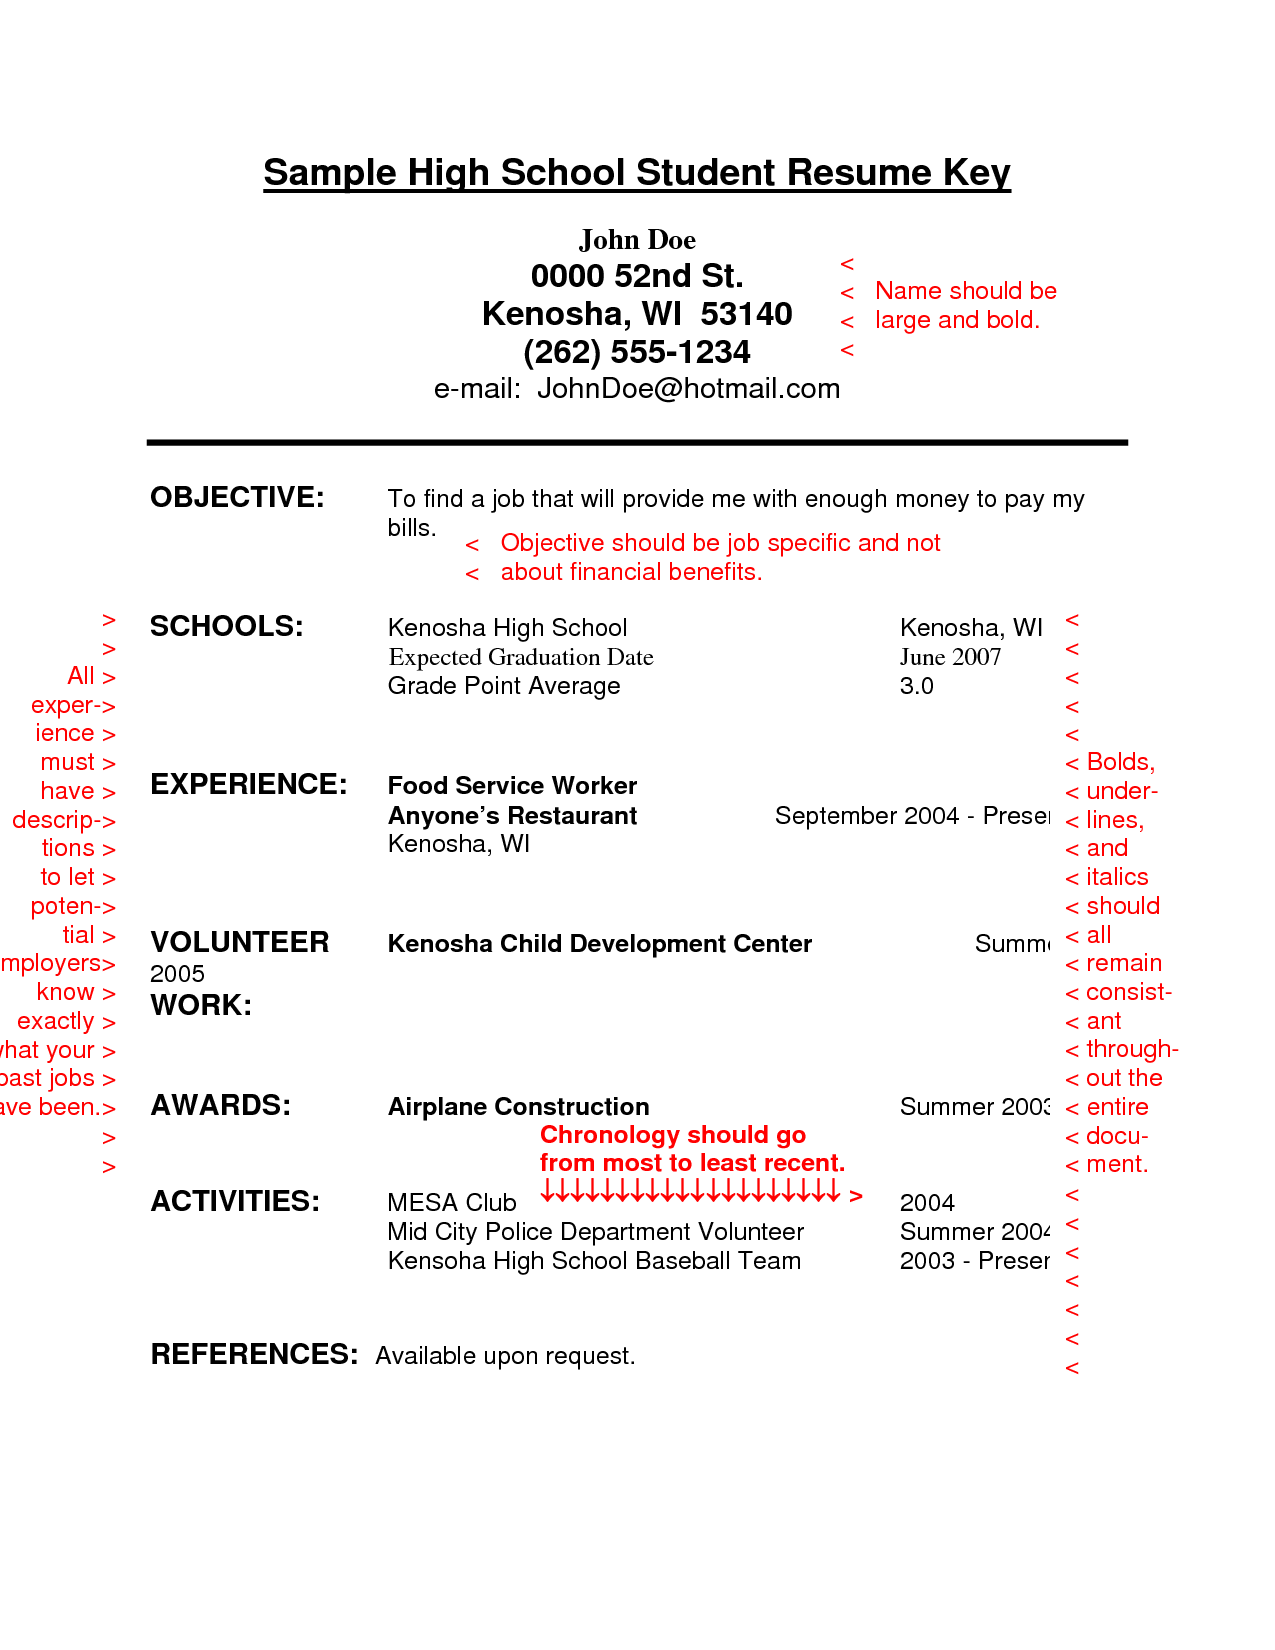 sample resume for high school student first job sample resume for high school student with no job experience sample resume for high school student with